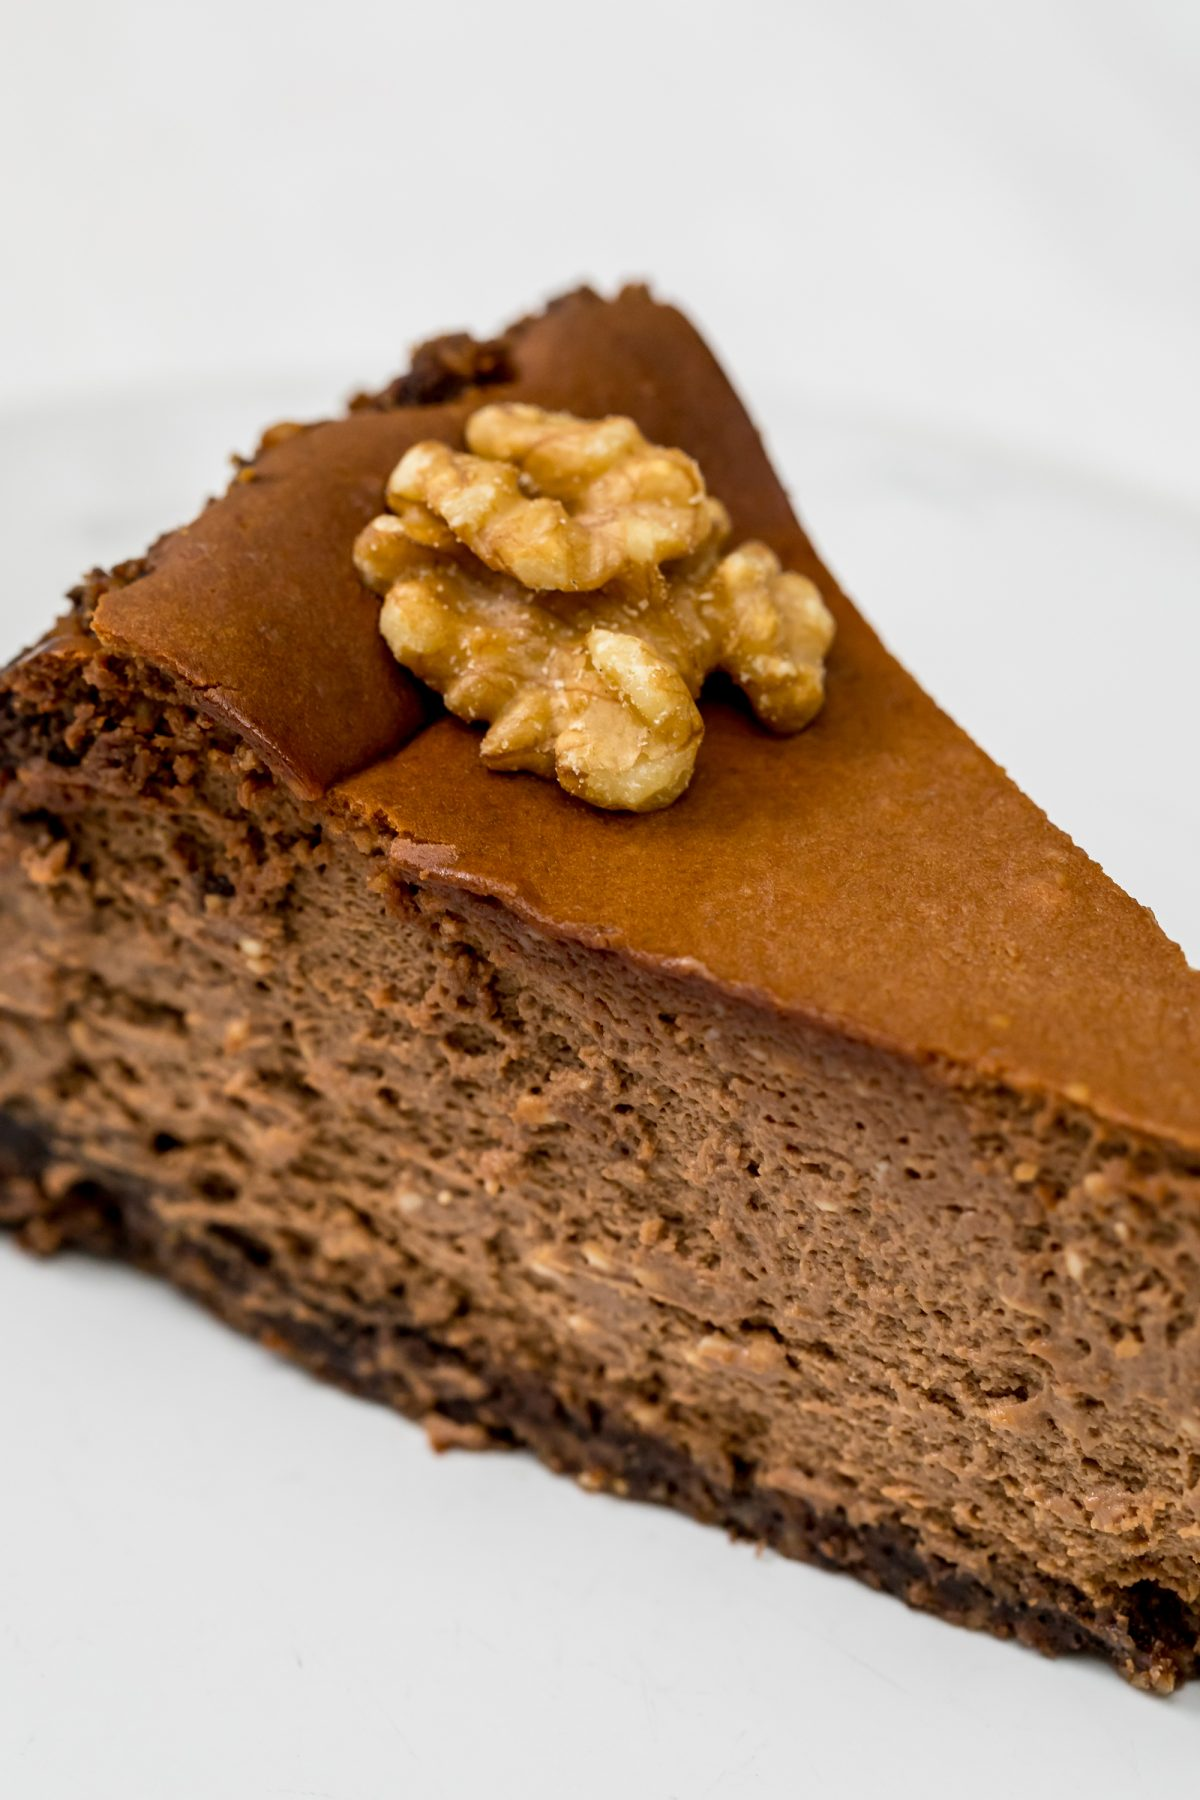 Coffe and chocolate cheesecake with walnuts